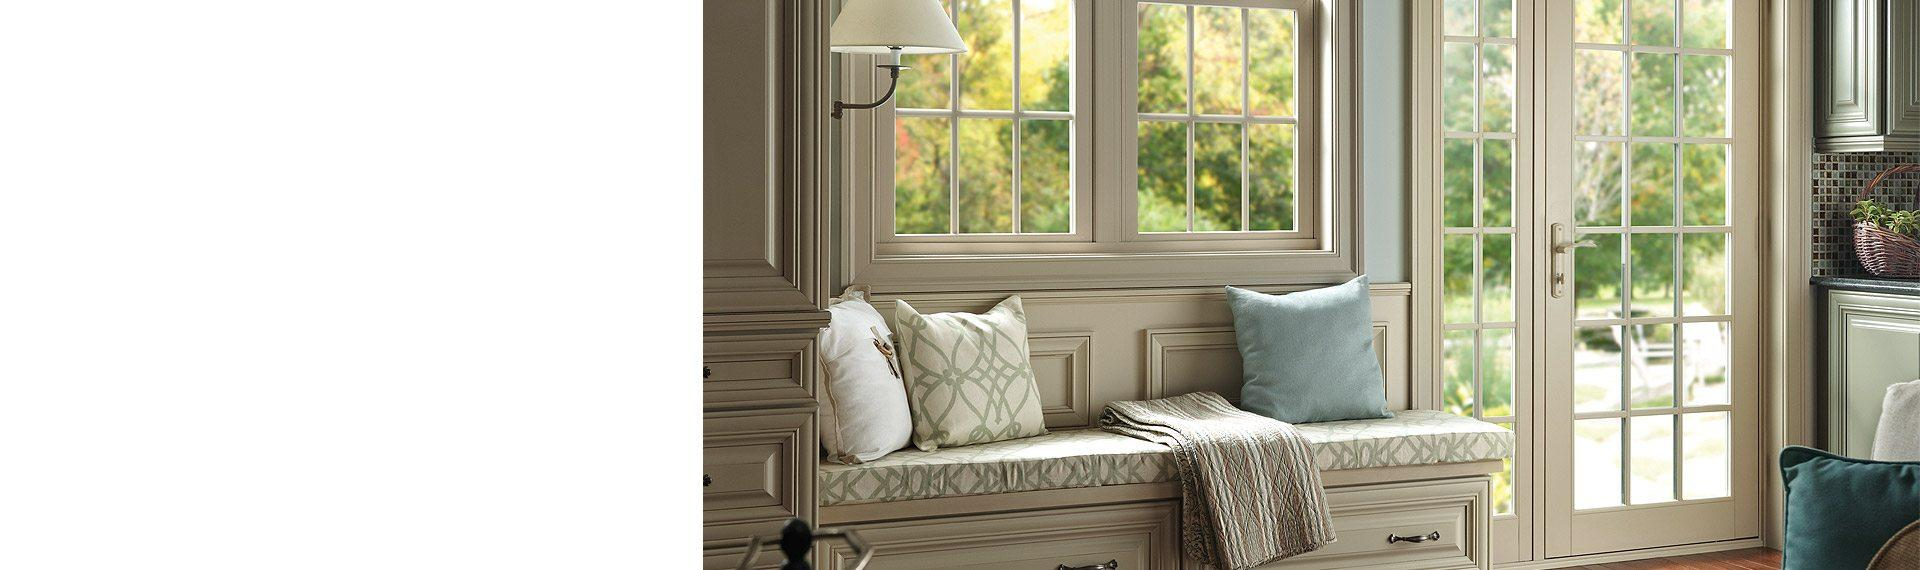 Tuscany Series vinyl Out-Swing French patio door